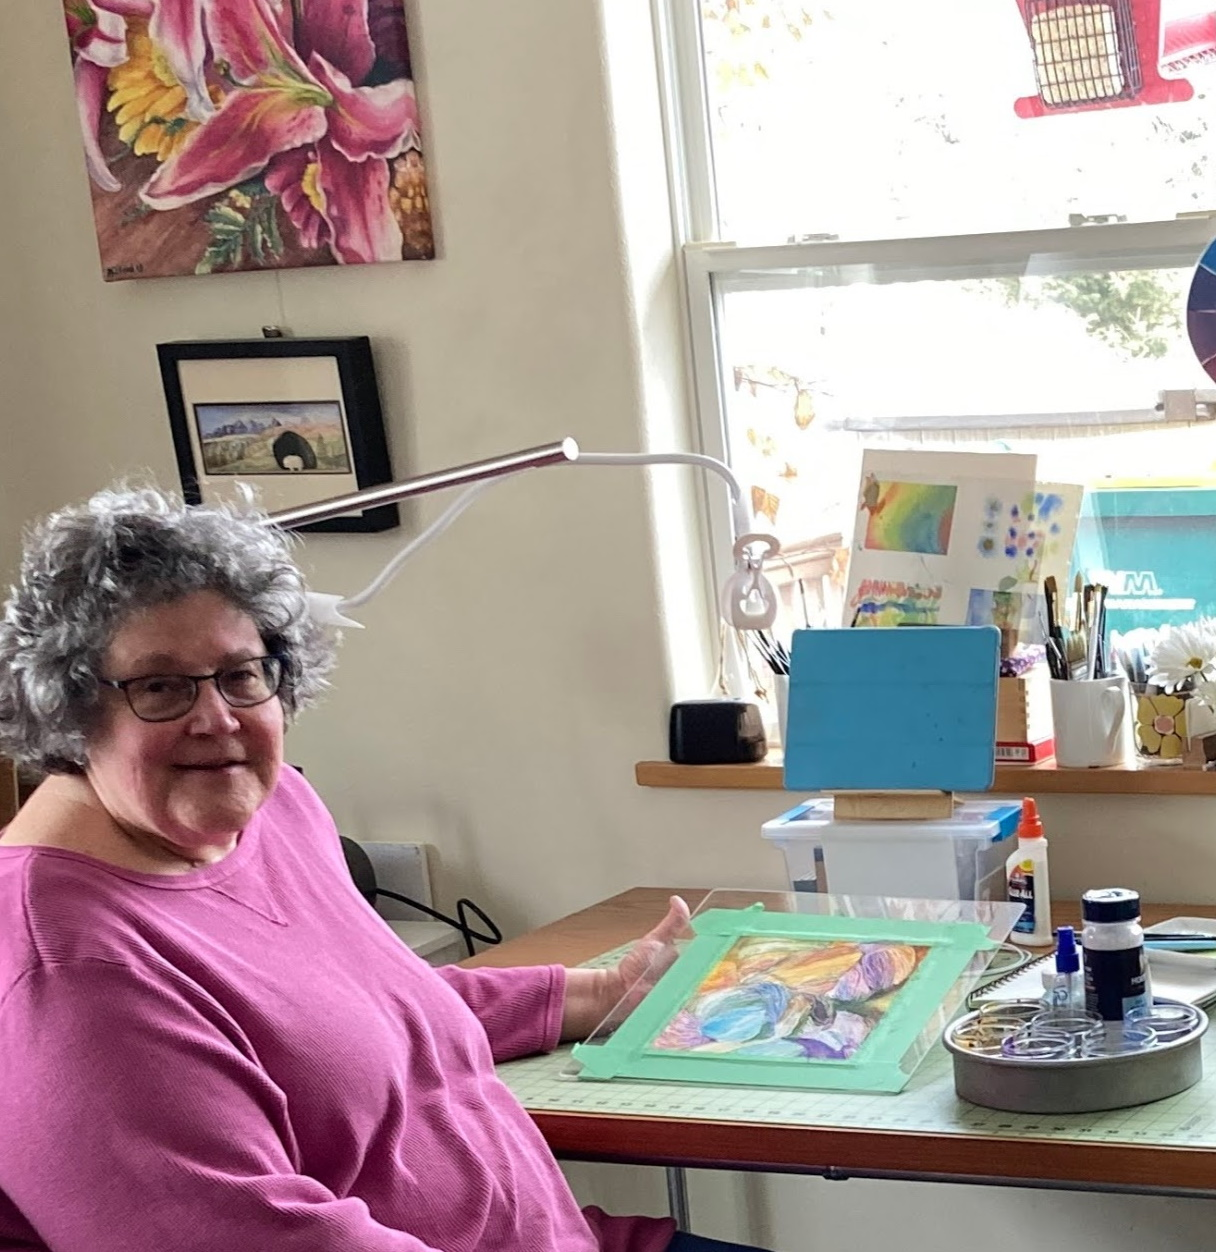 Katherine Ford in her studio with a watercolor painting of yarn skeins